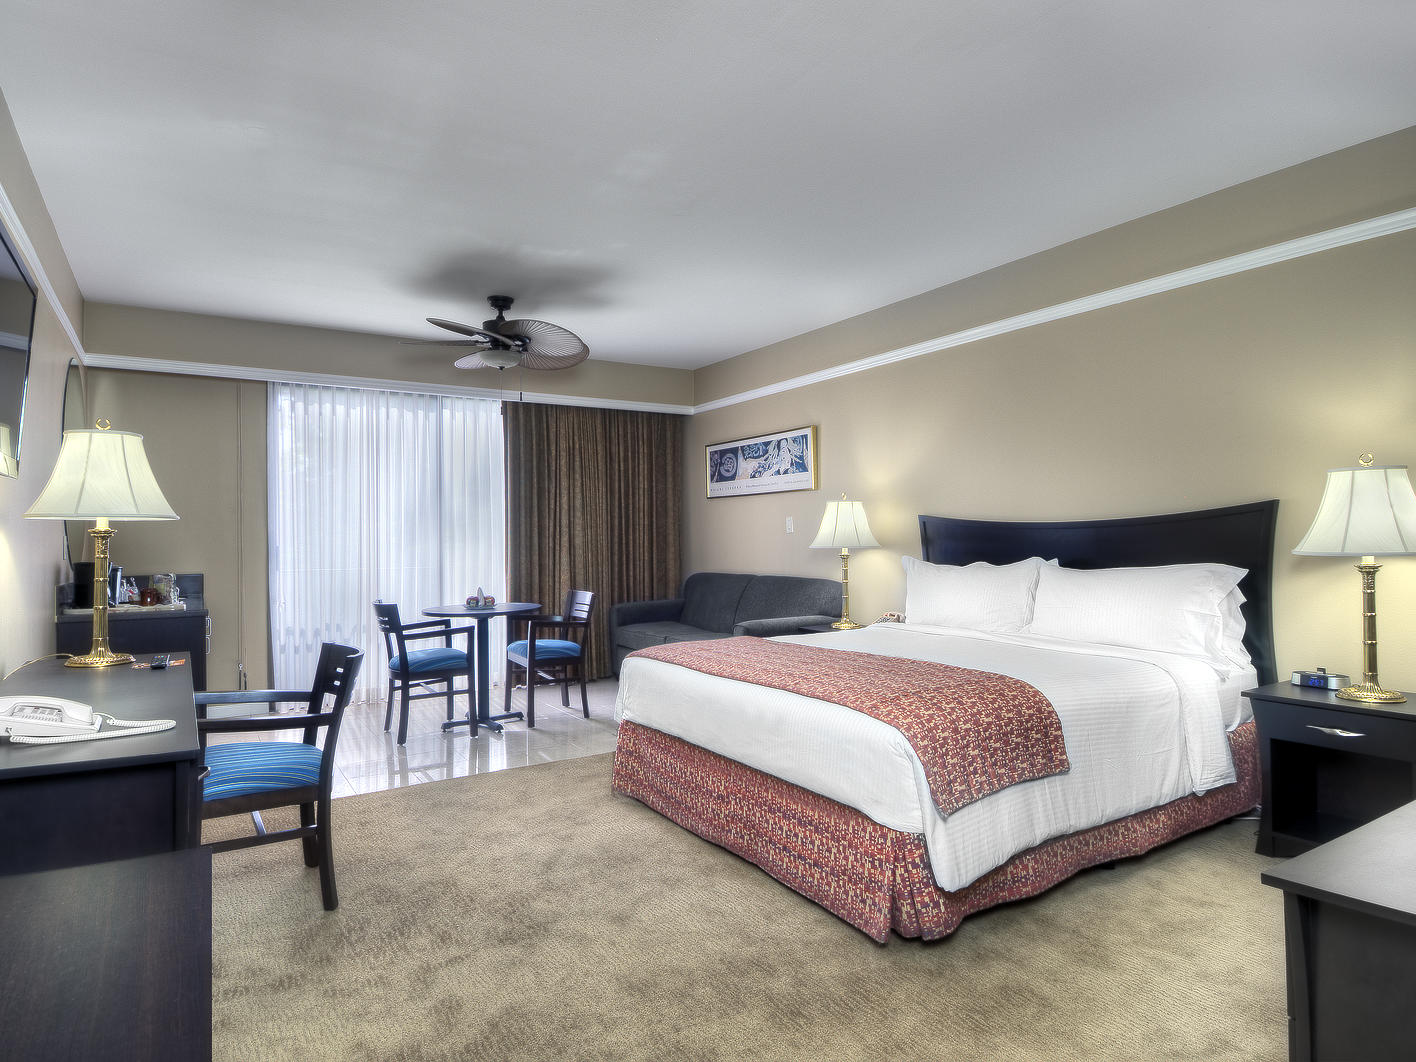 bed in carpeted hotel room with furniture